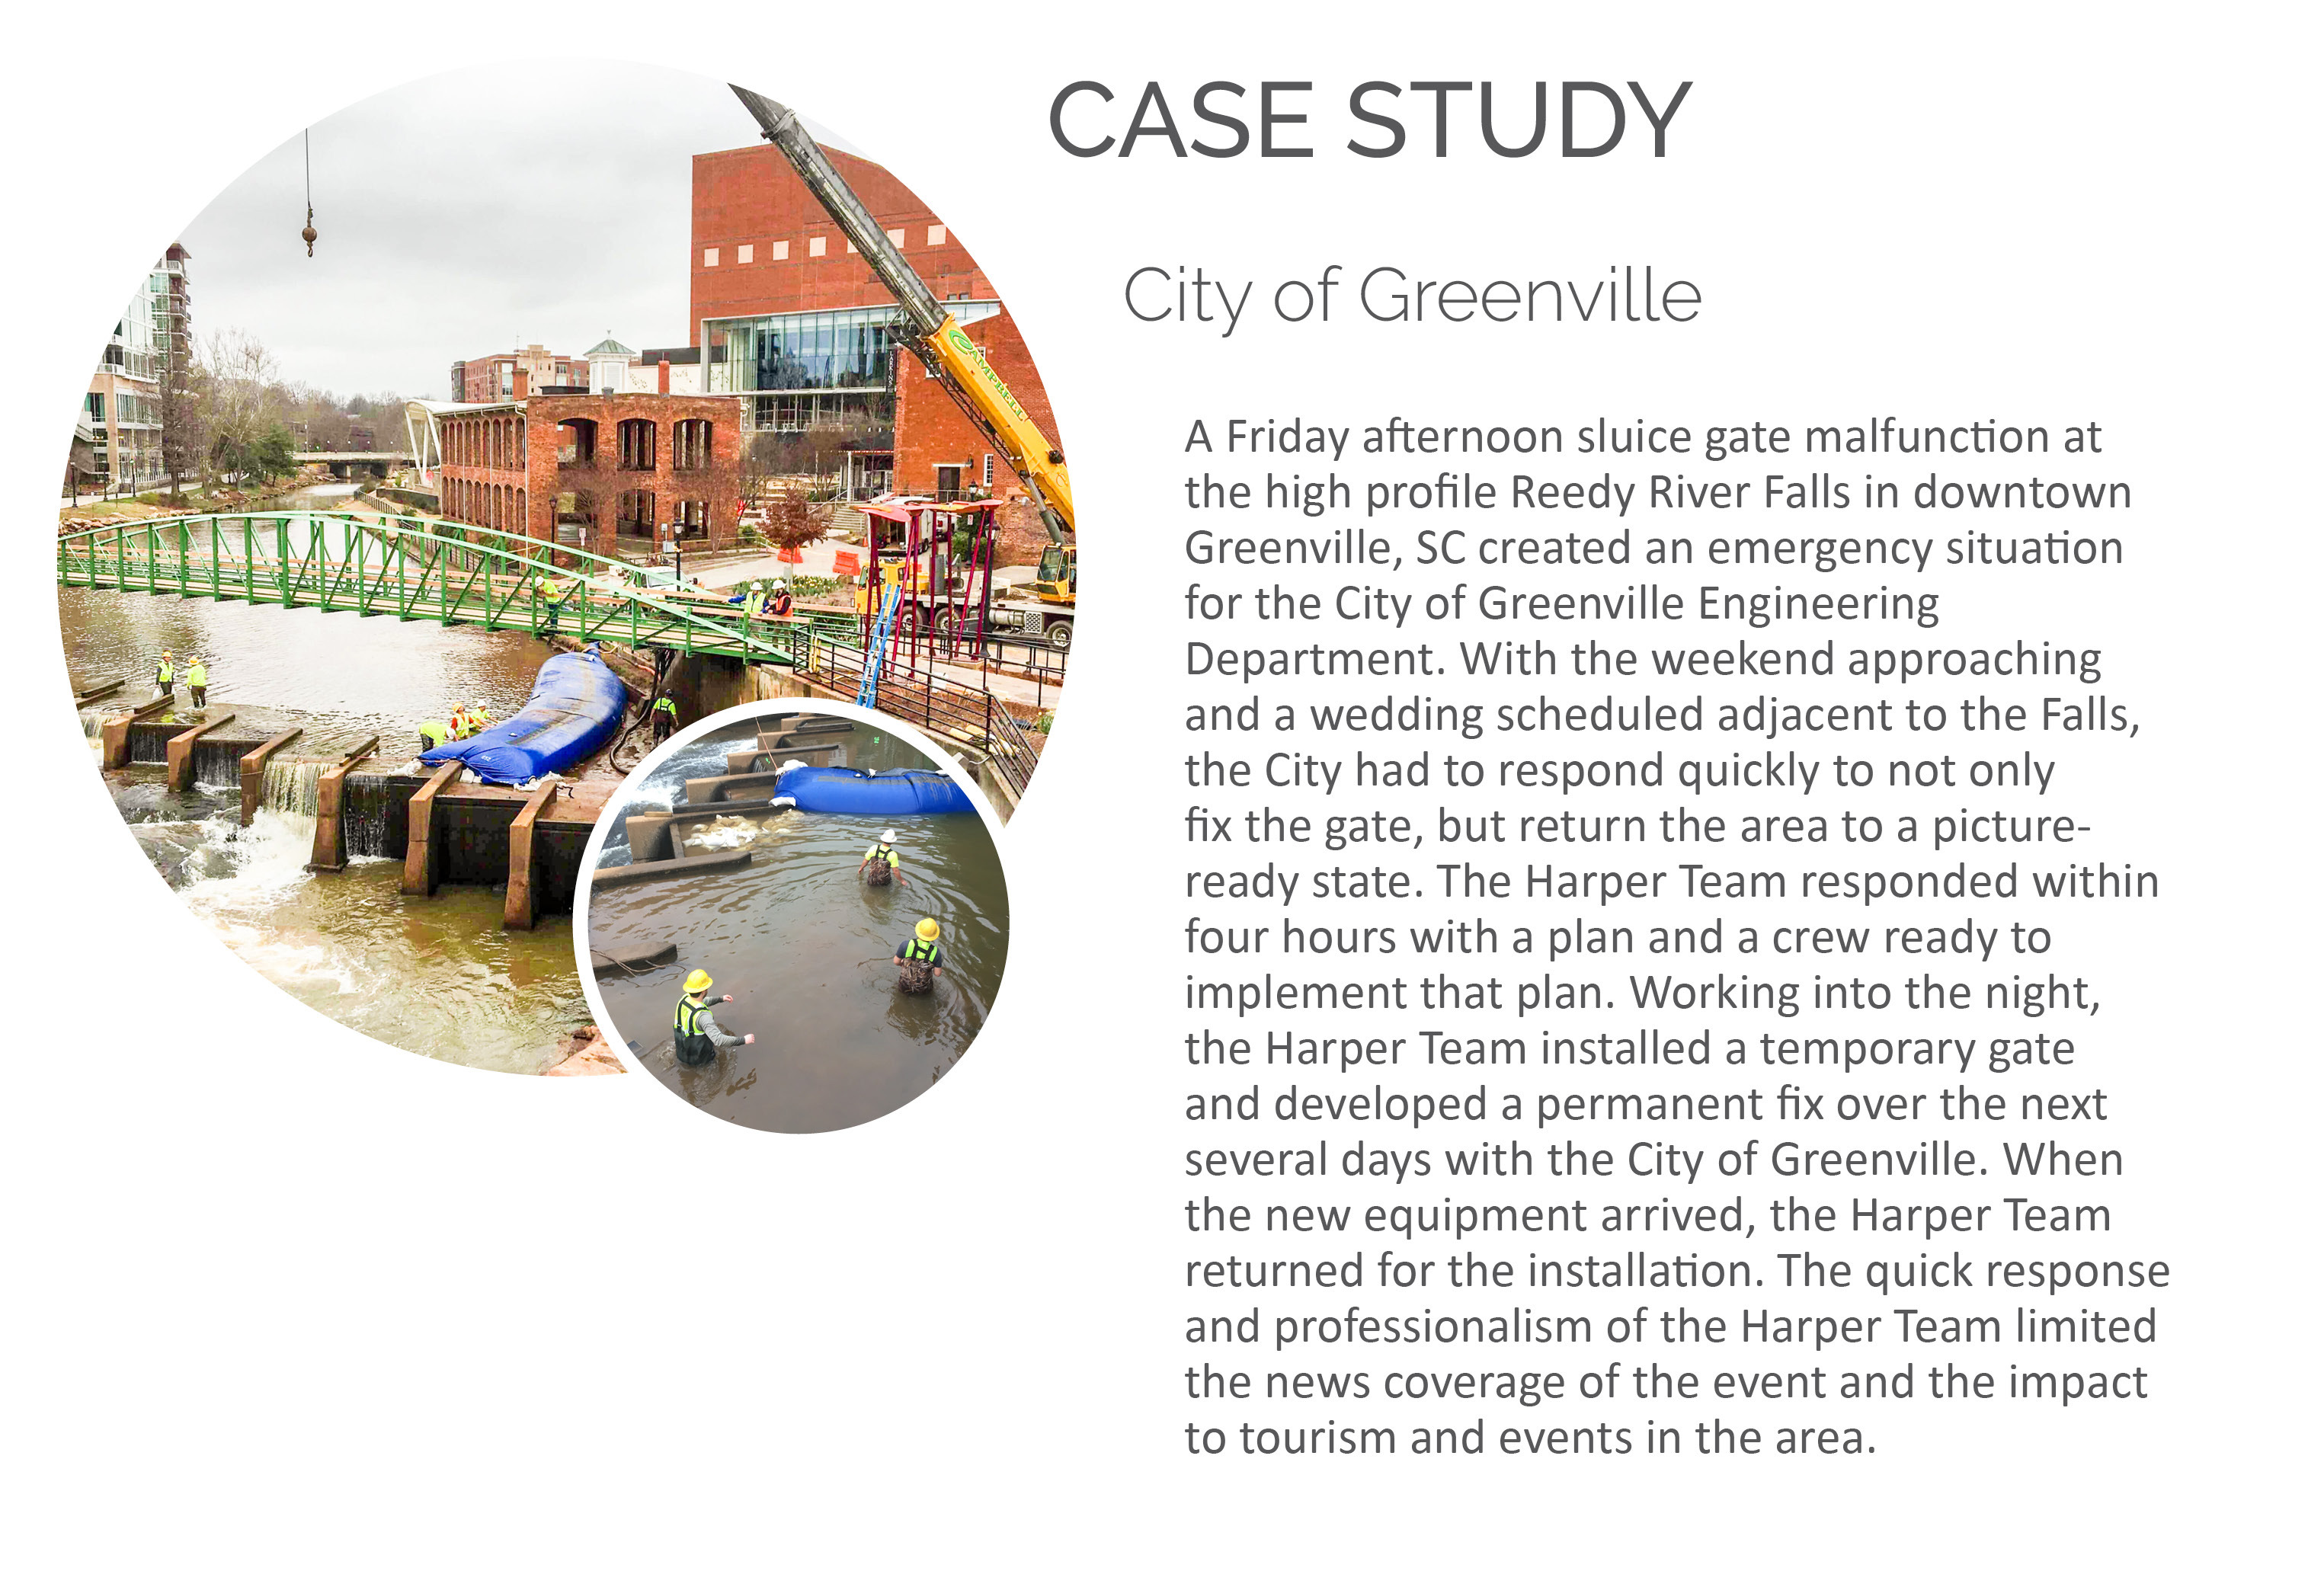 City of Greenville Case Study